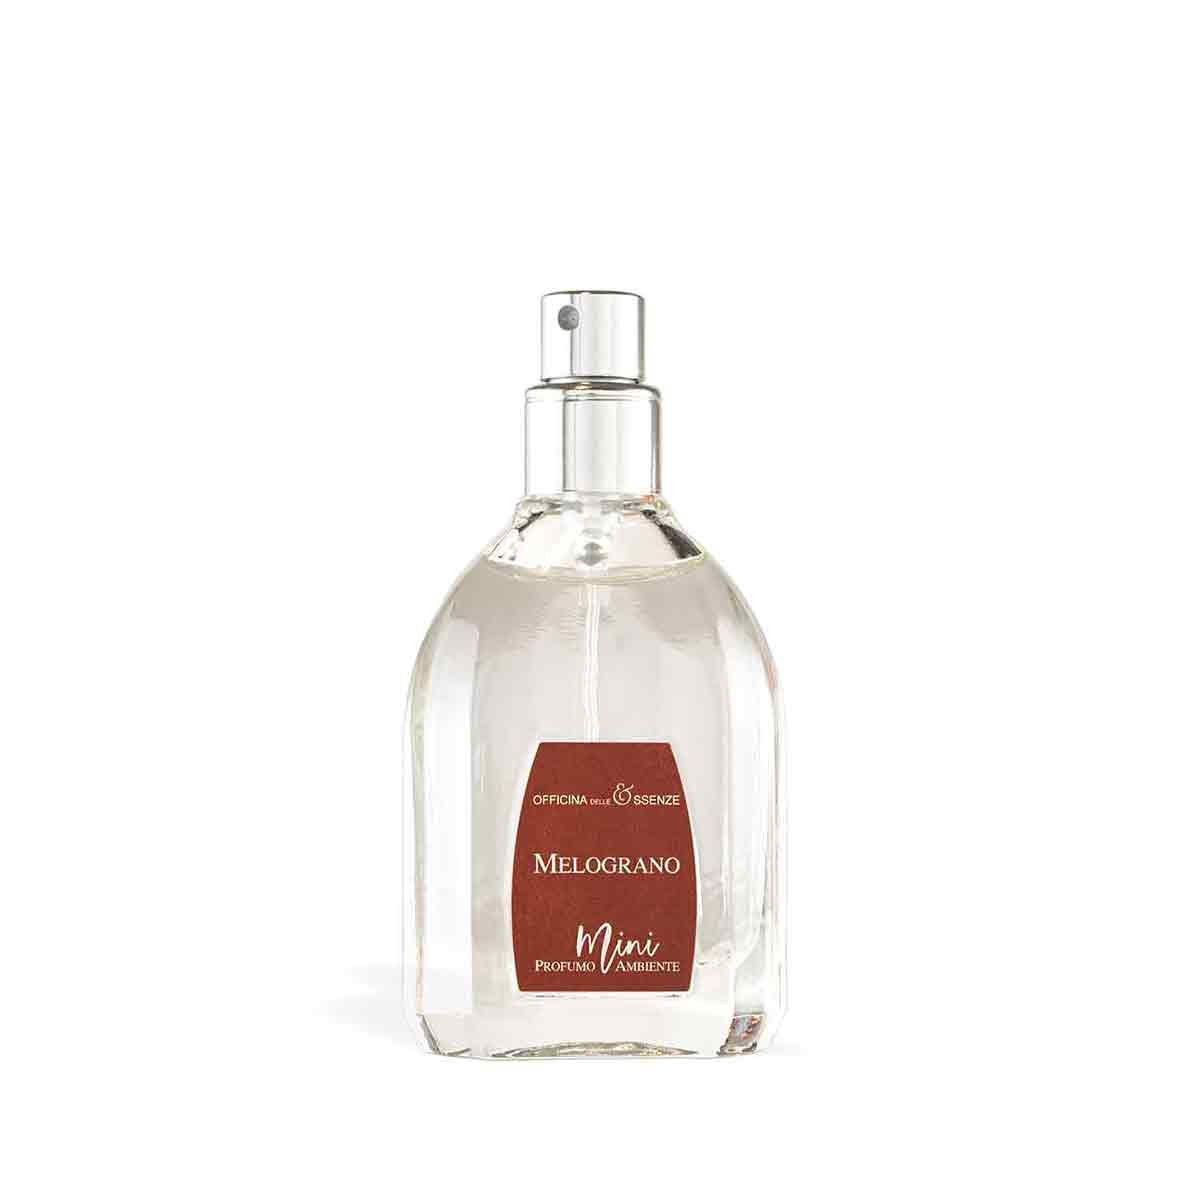 Mini profumo ambiente Melograno da 25 ml